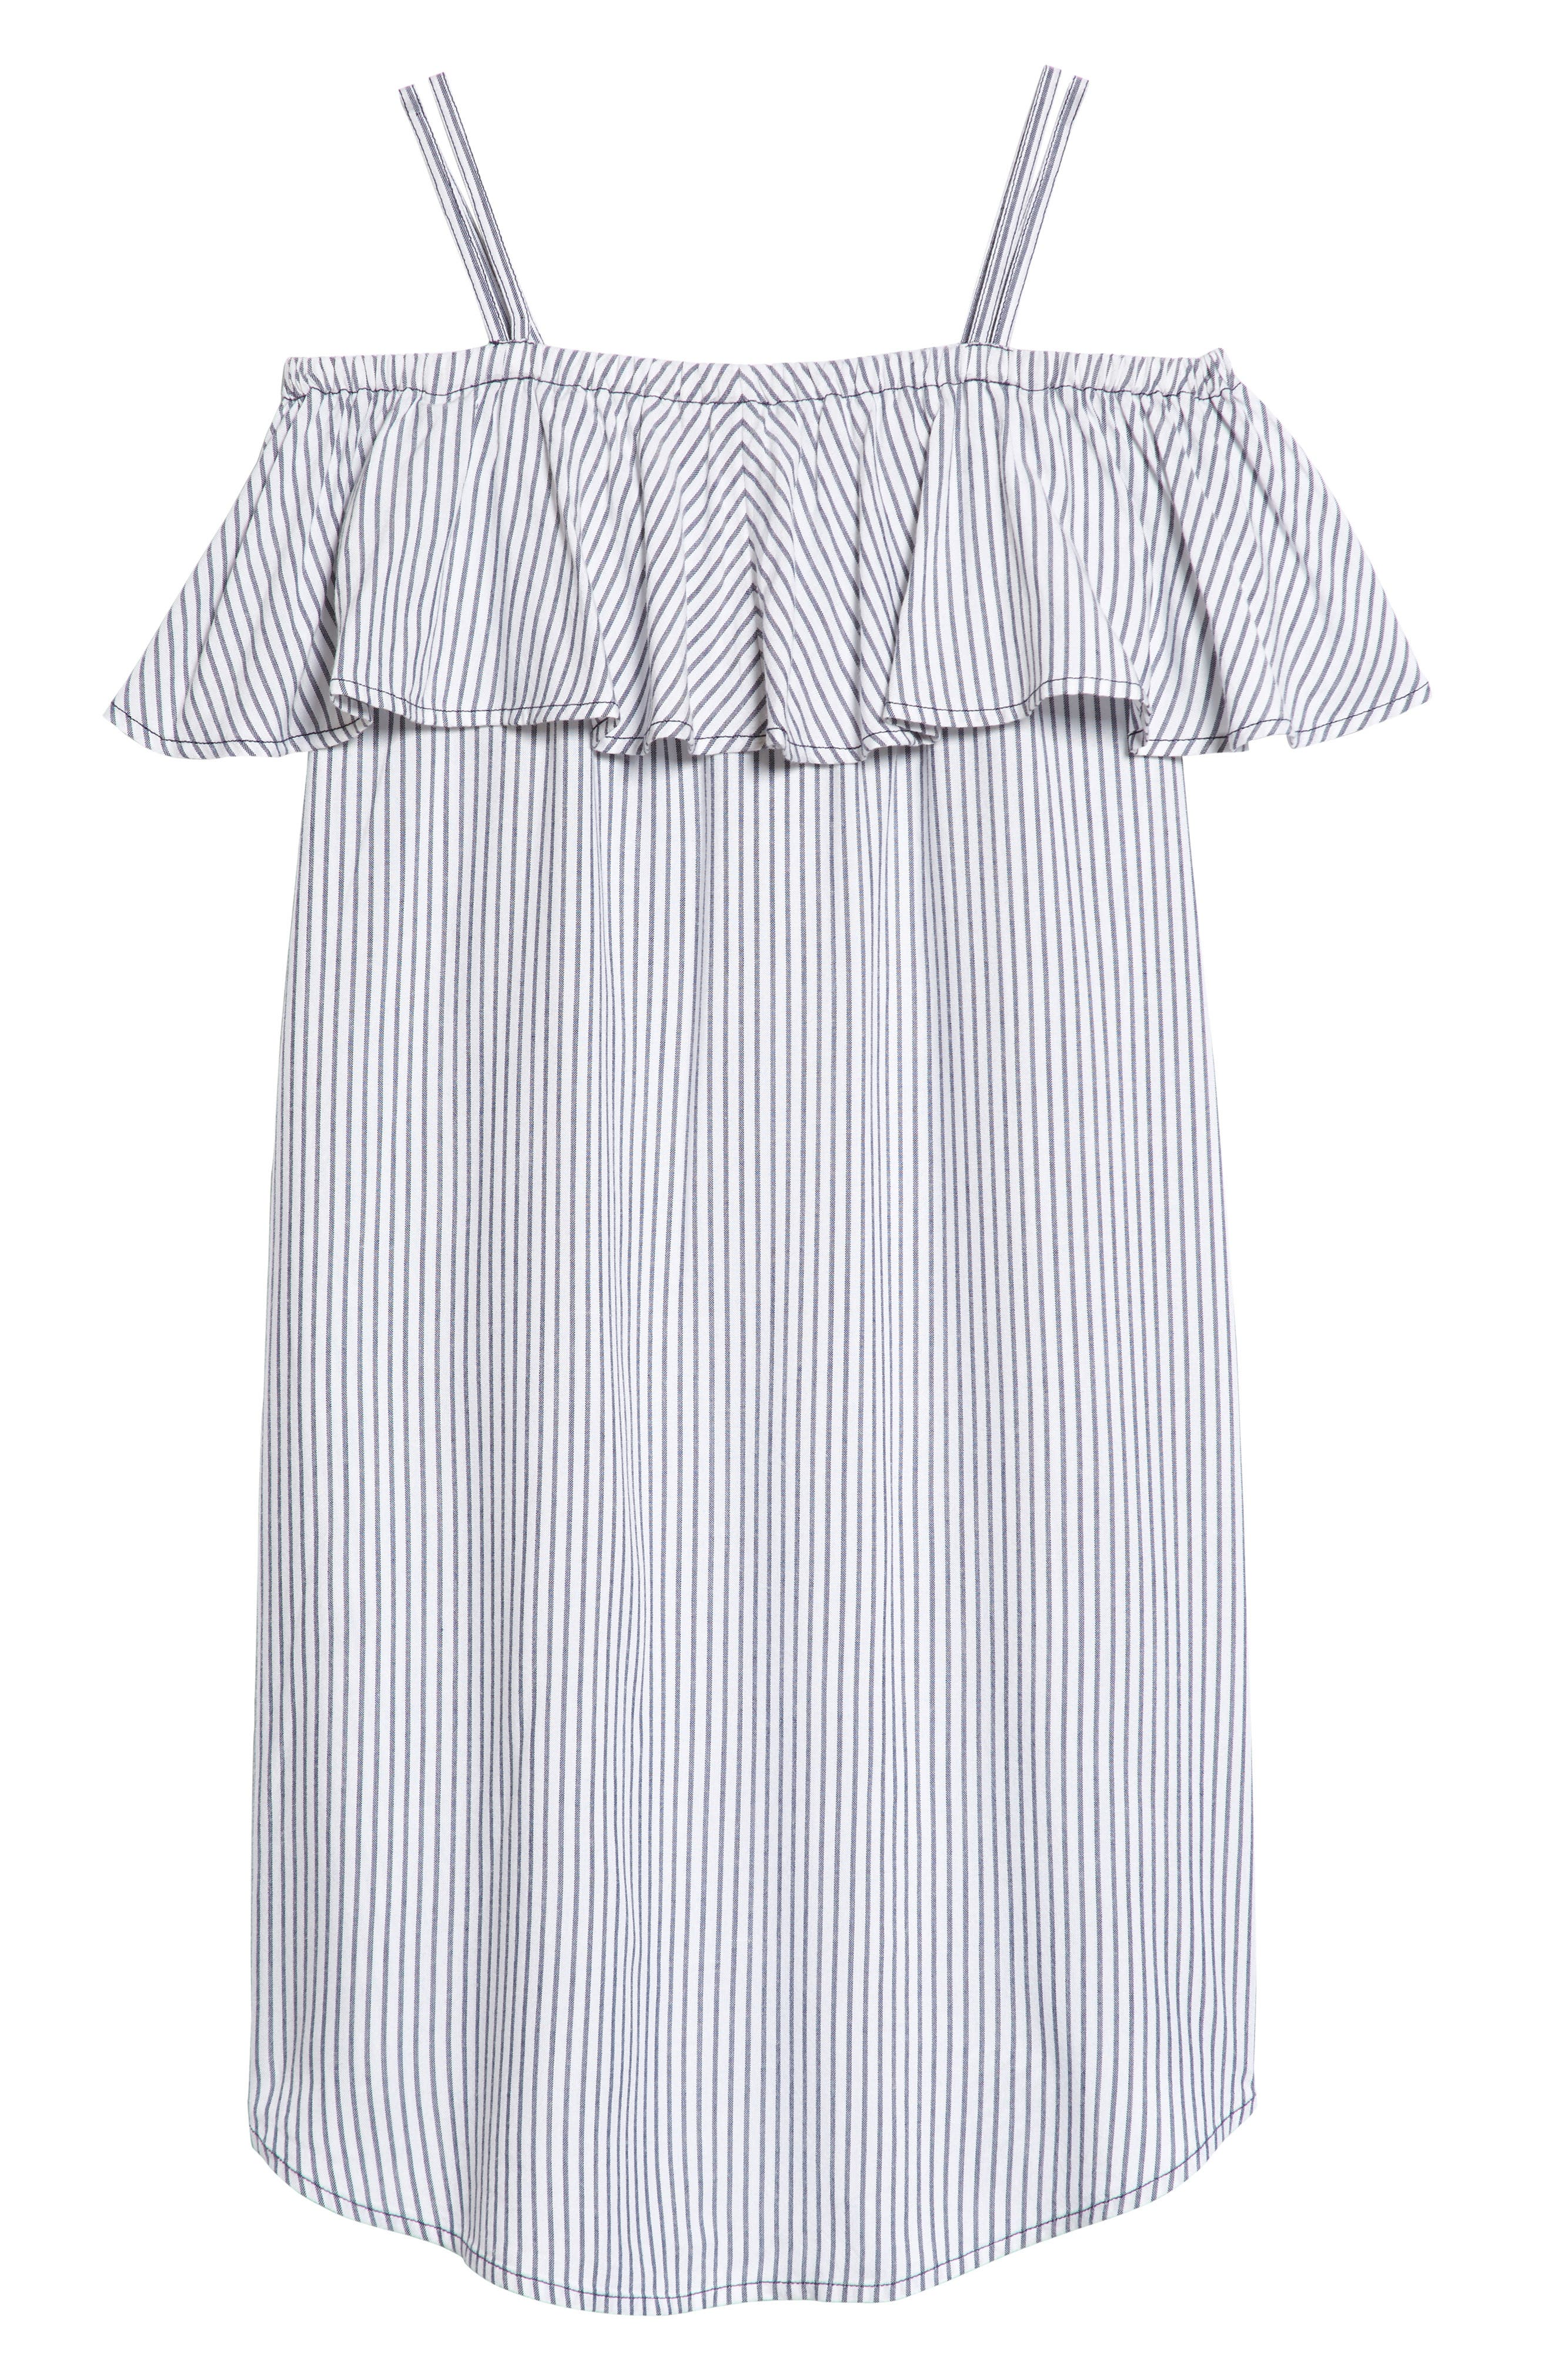 Ruffle Cold Shoulder Dress,                         Main,                         color, White- Blue Stripe